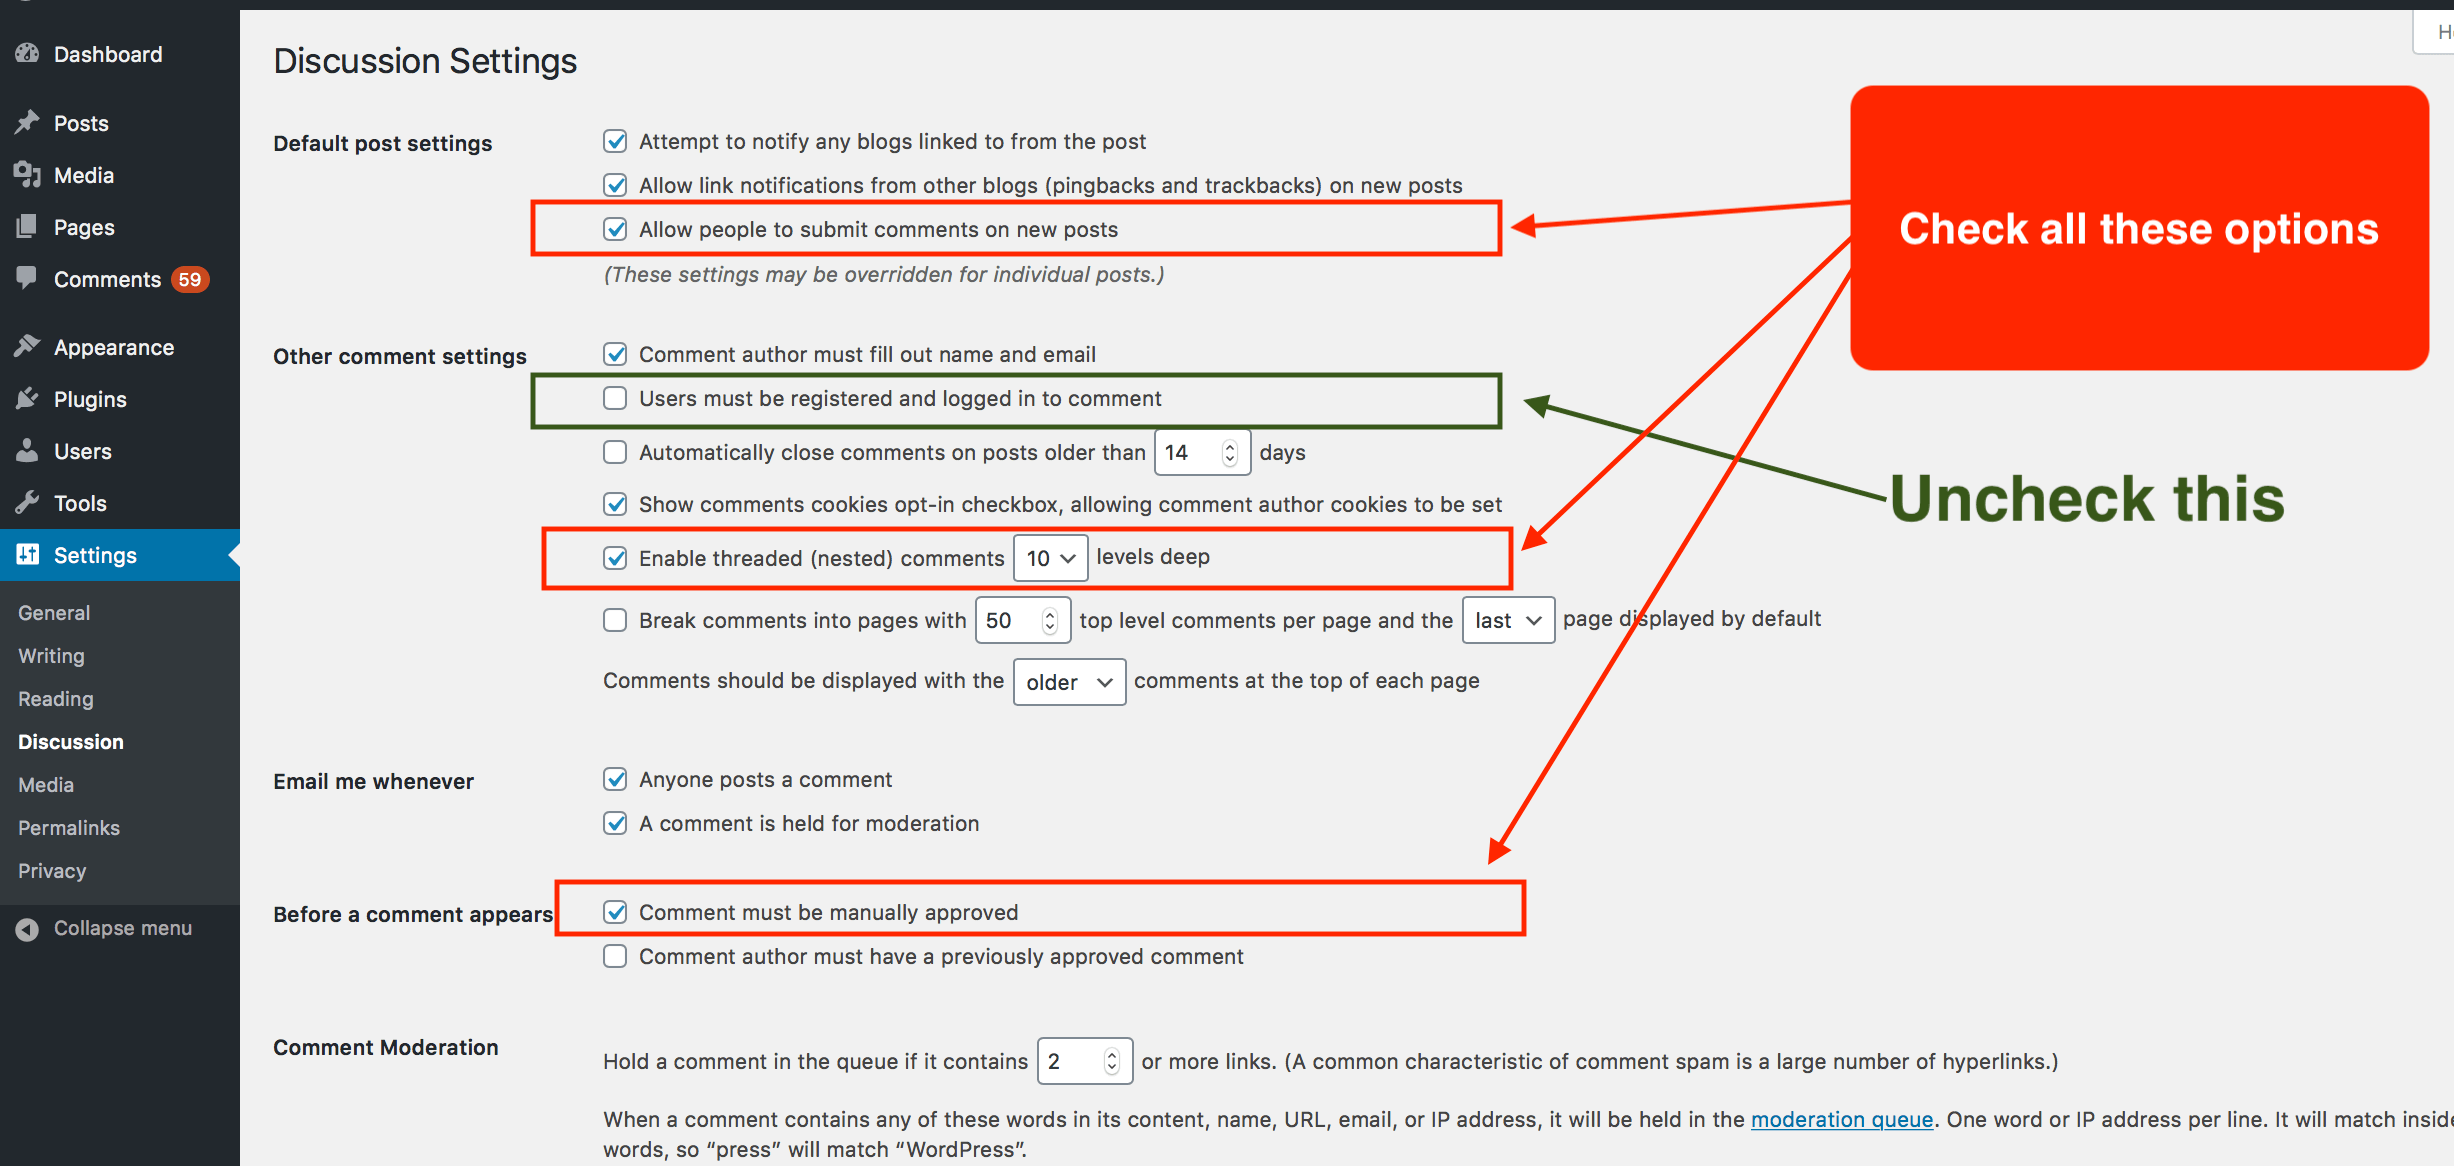 Using the WordPress discussion settings